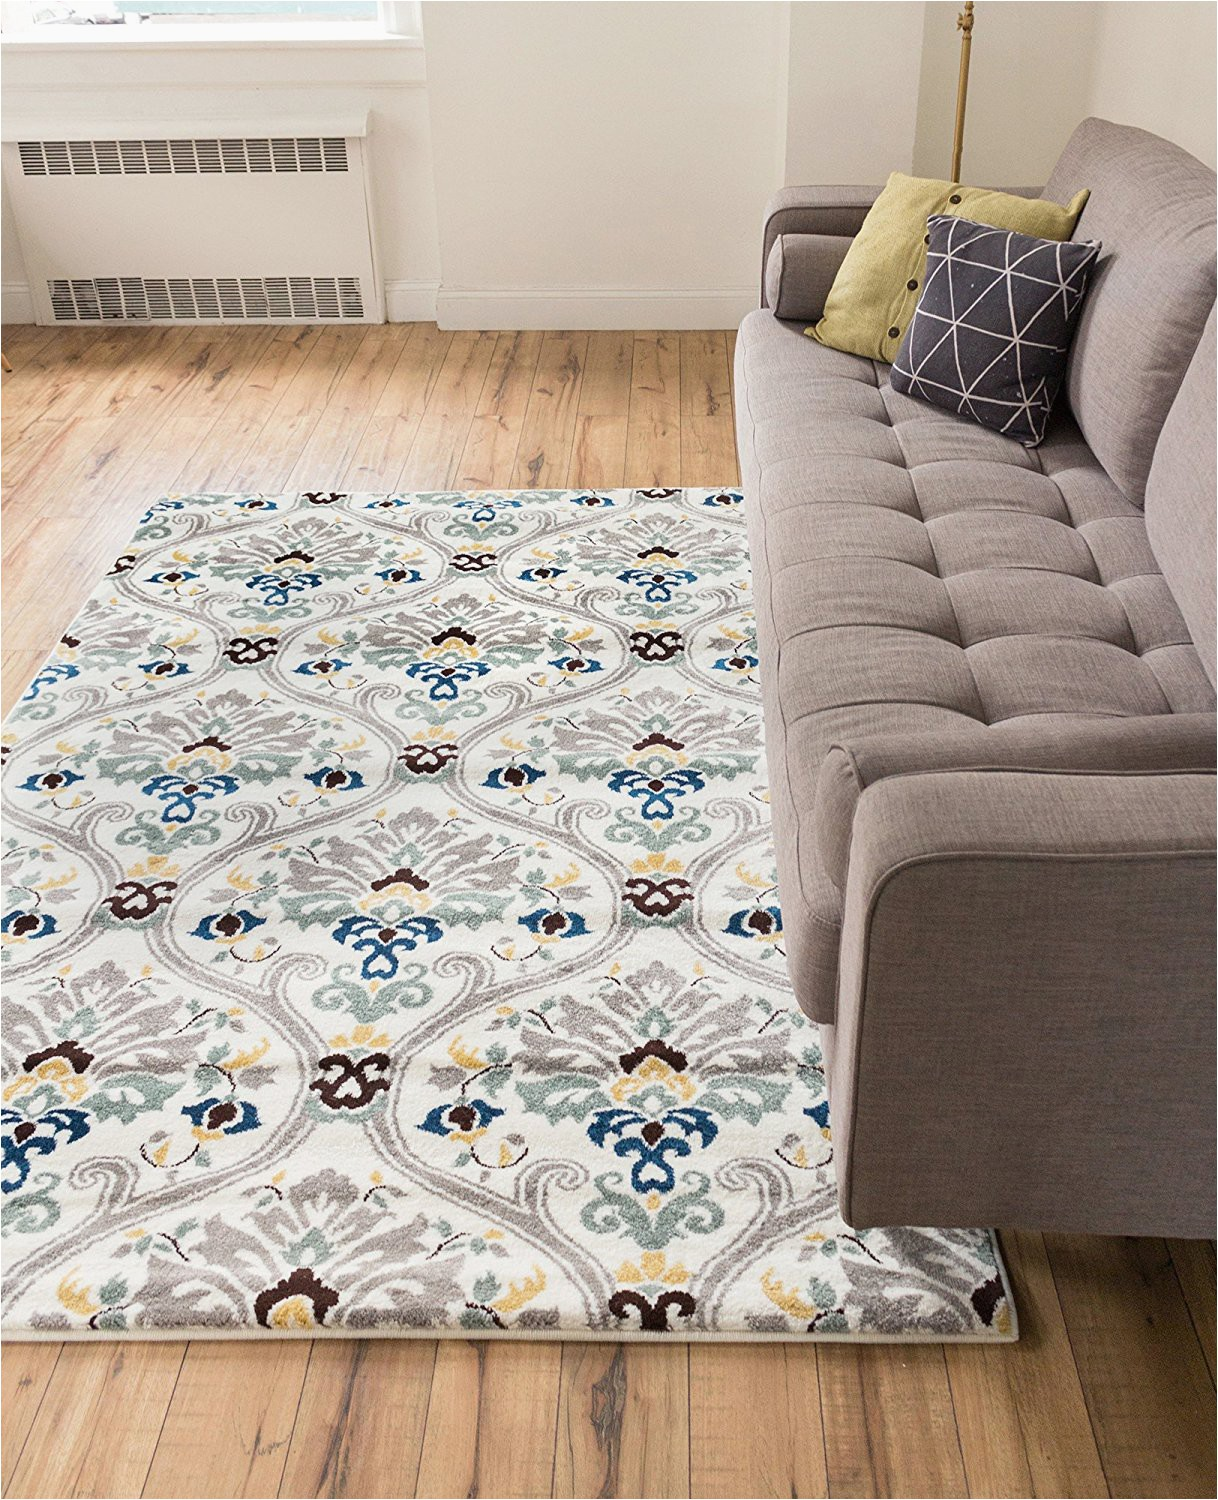 """Light Gray area Rug 5×7 Ogee Waves Lattice Grey Gold Blue Ivory Floral area Rug 5×7 5 3"""" X 7 3"""" Modern oriental Geometric soft Pile Contemporary Carpet Thick Plush Stain"""